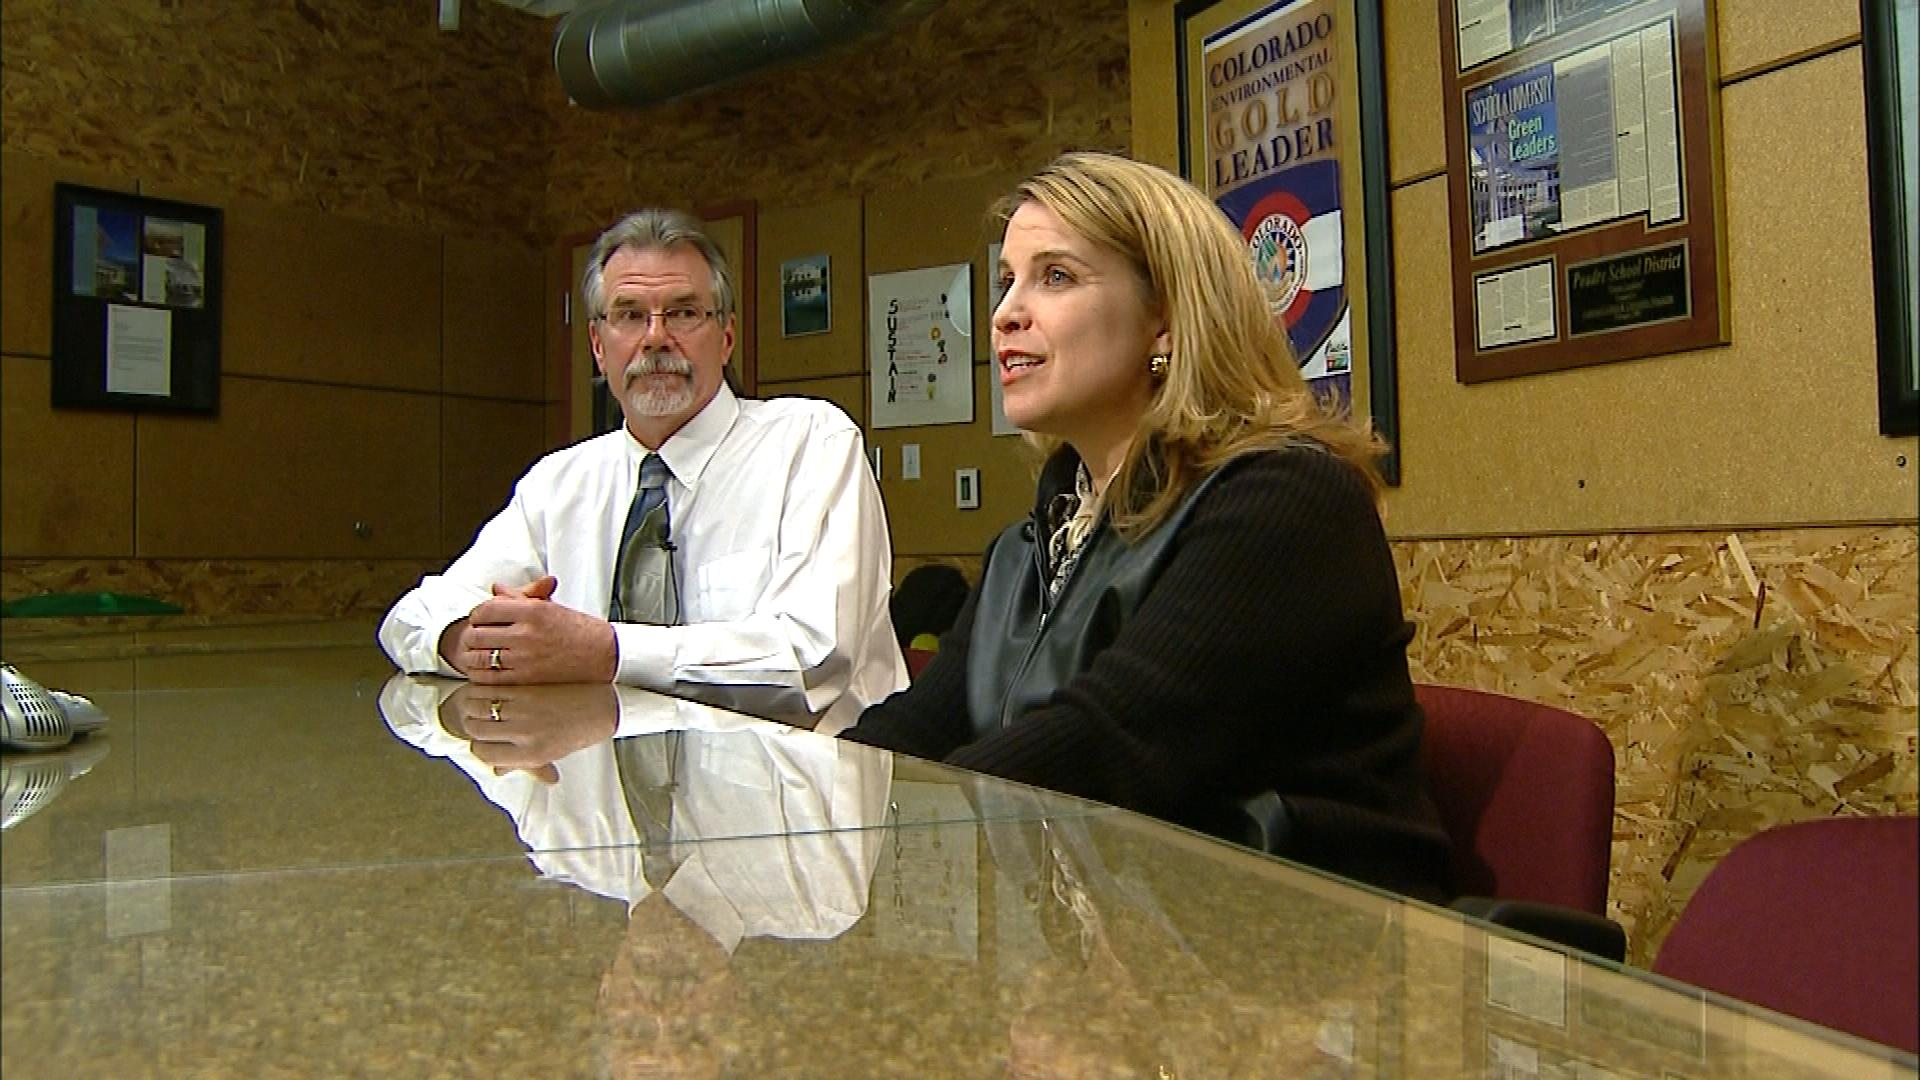 Pete Hall and Danielle Clark of the Poudre School District (credit: CBS)